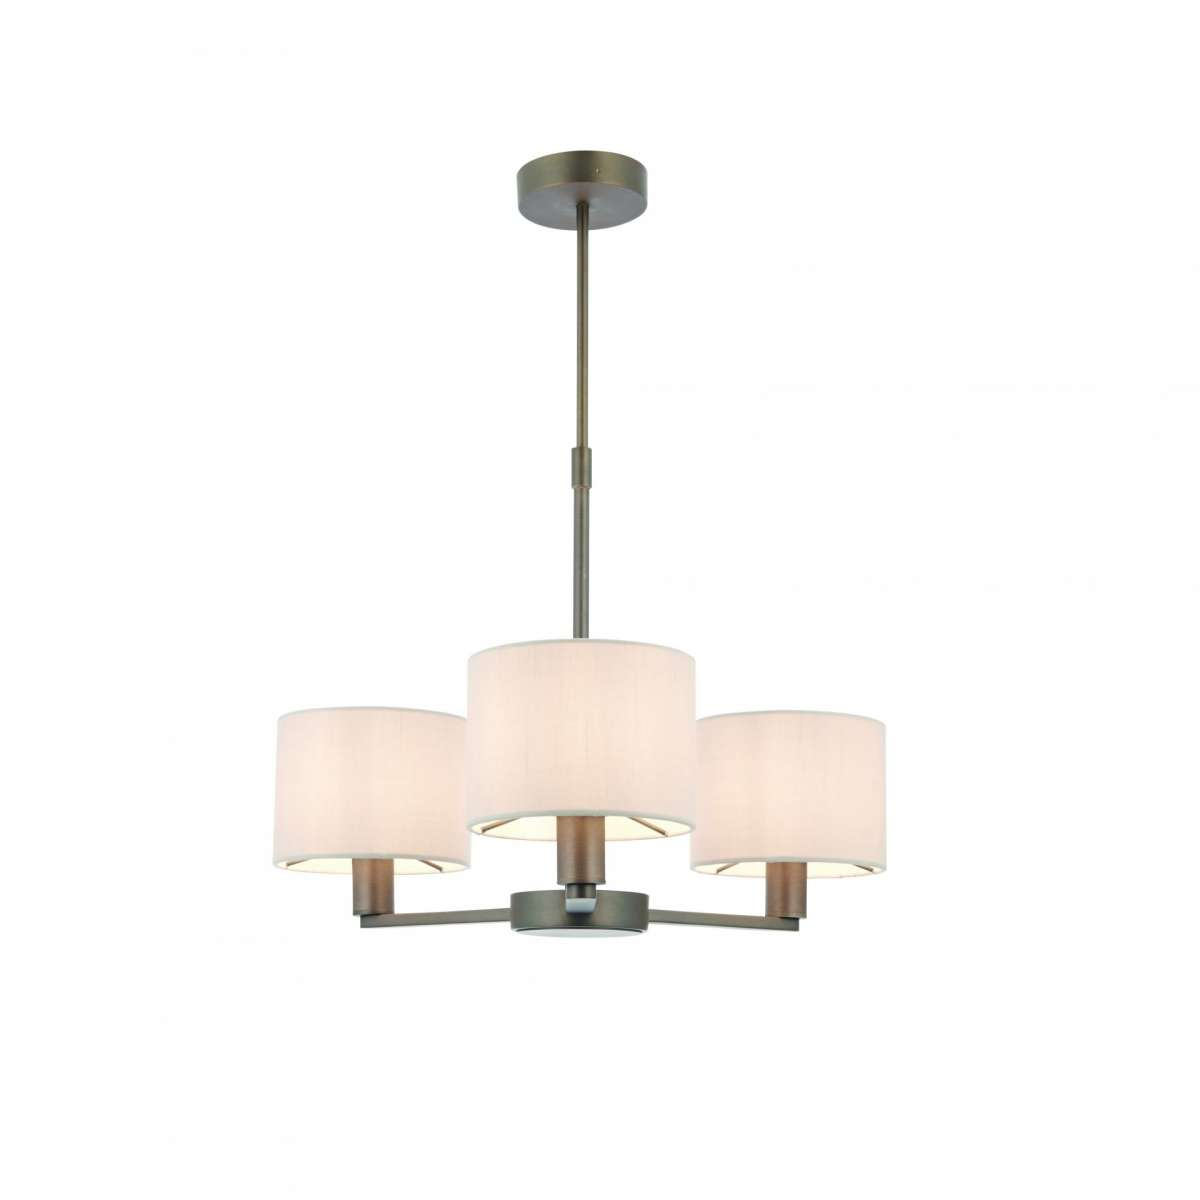 Daley 3 Light Drum Pendant in Bronze C/W Marble Shade